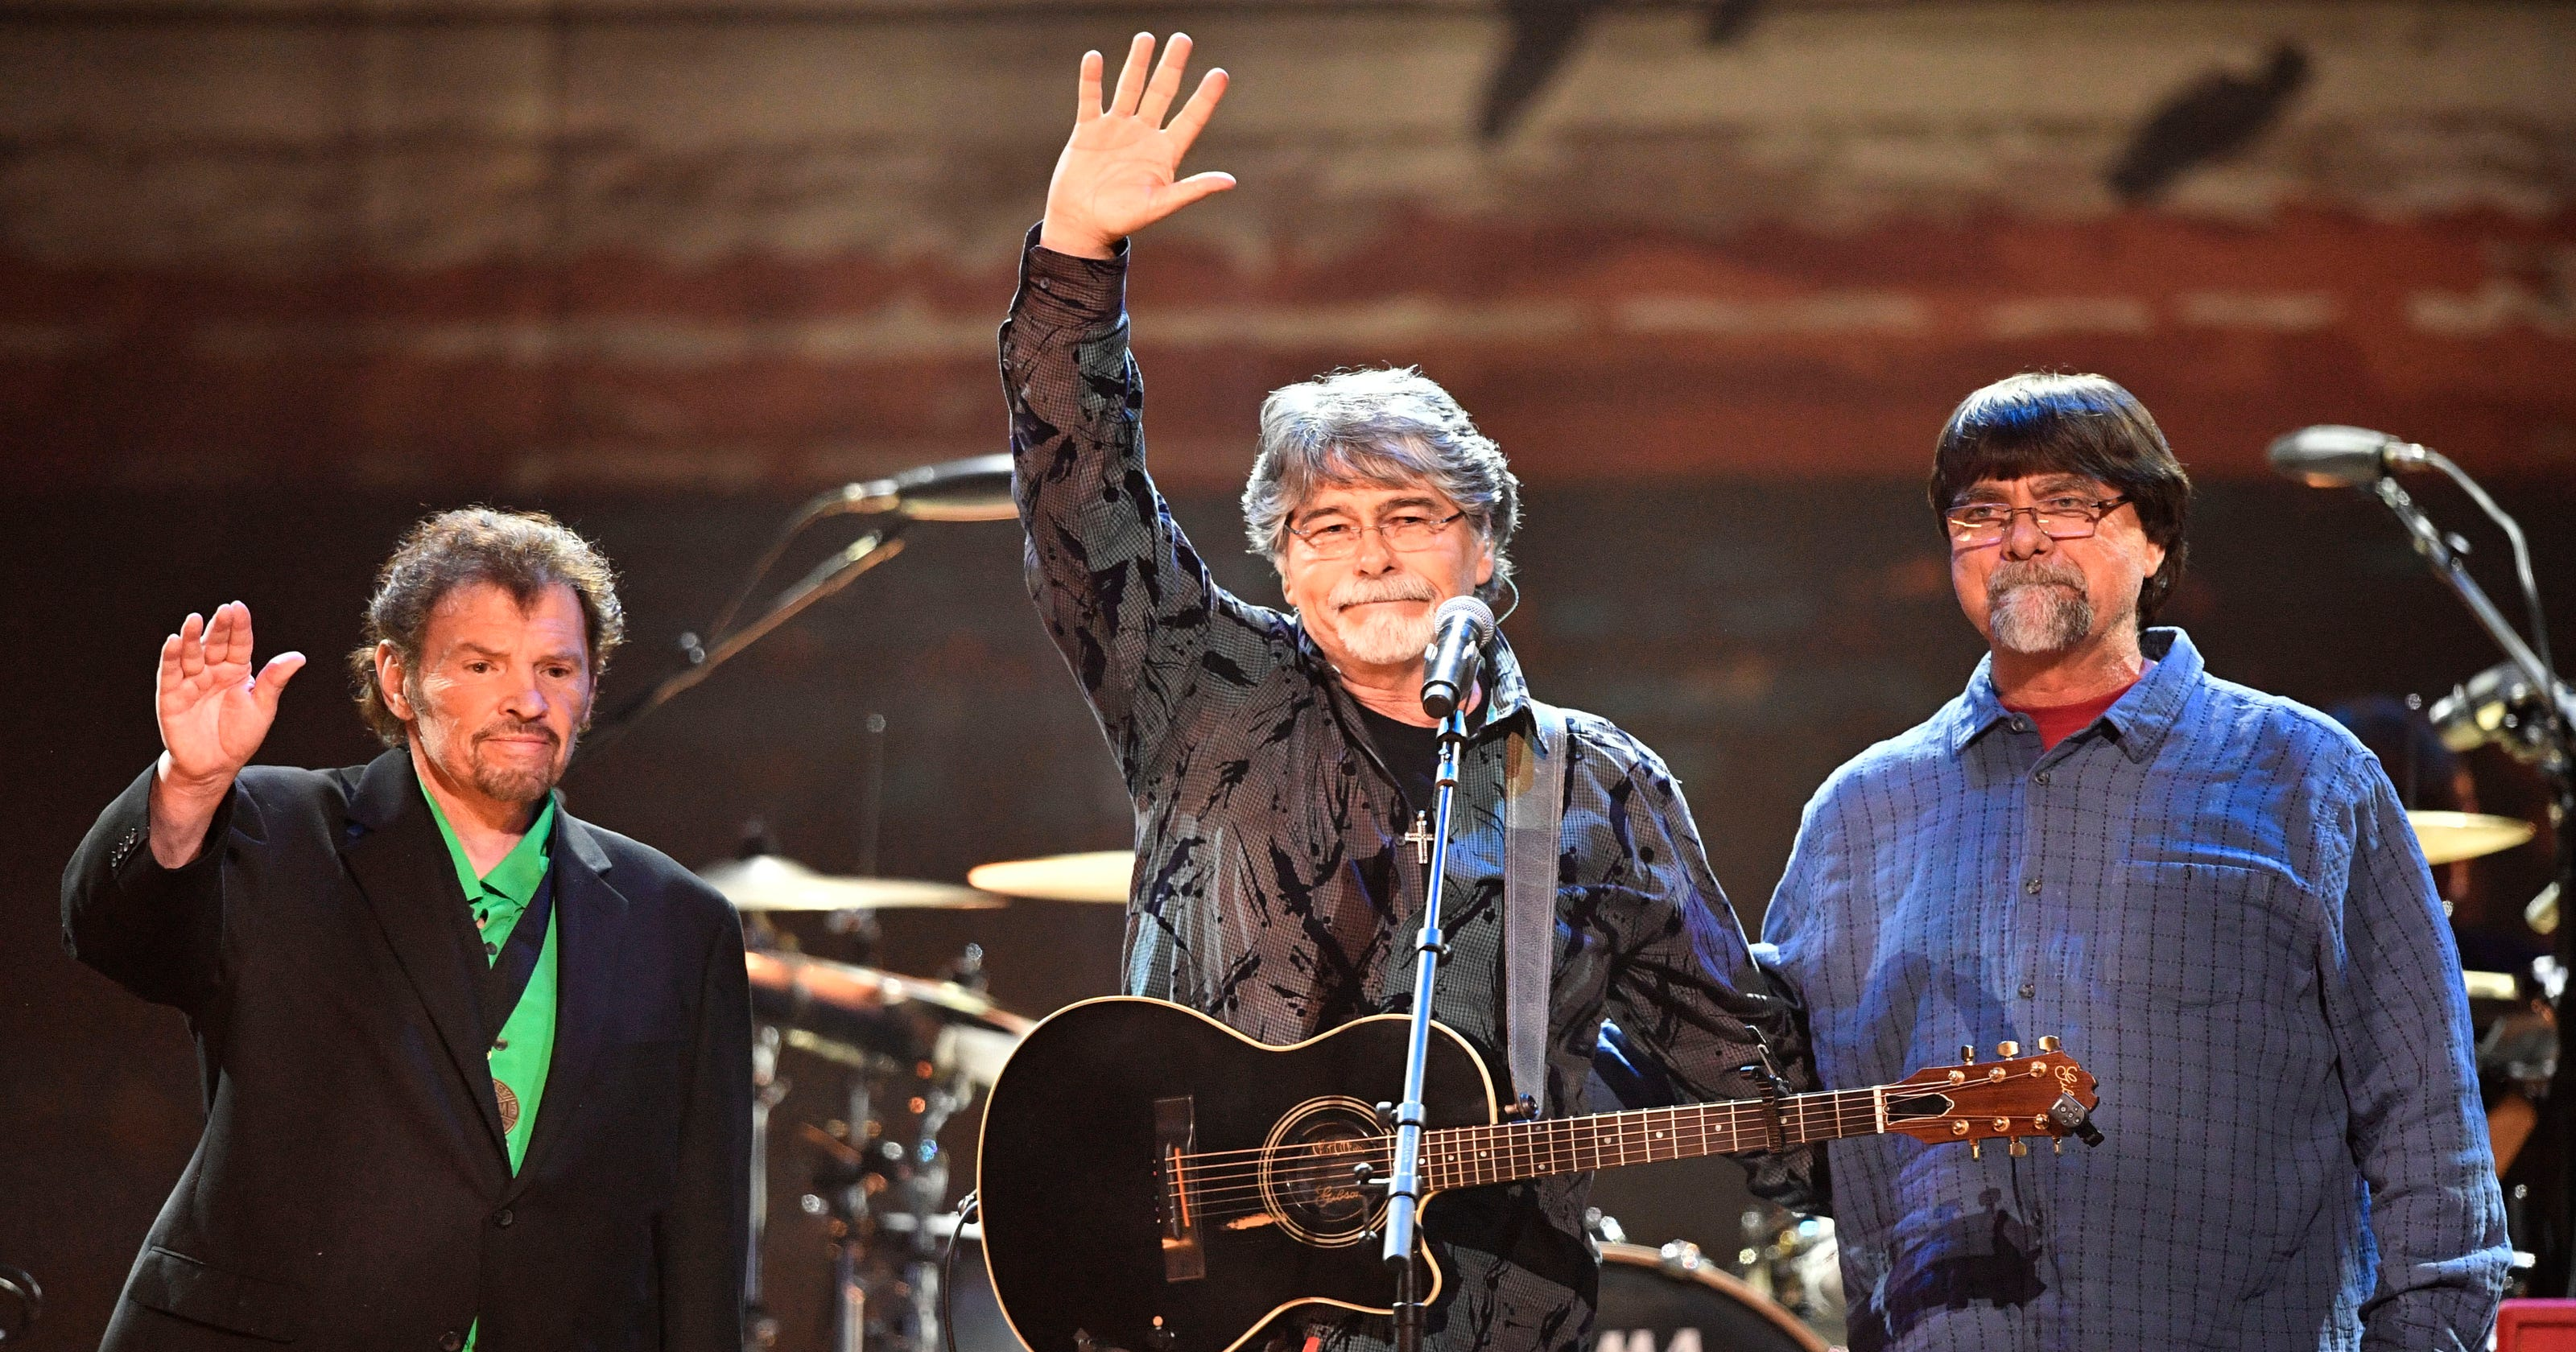 Alabama talks 50th anniversary tour, Jeff Cook's Parkinson's and the